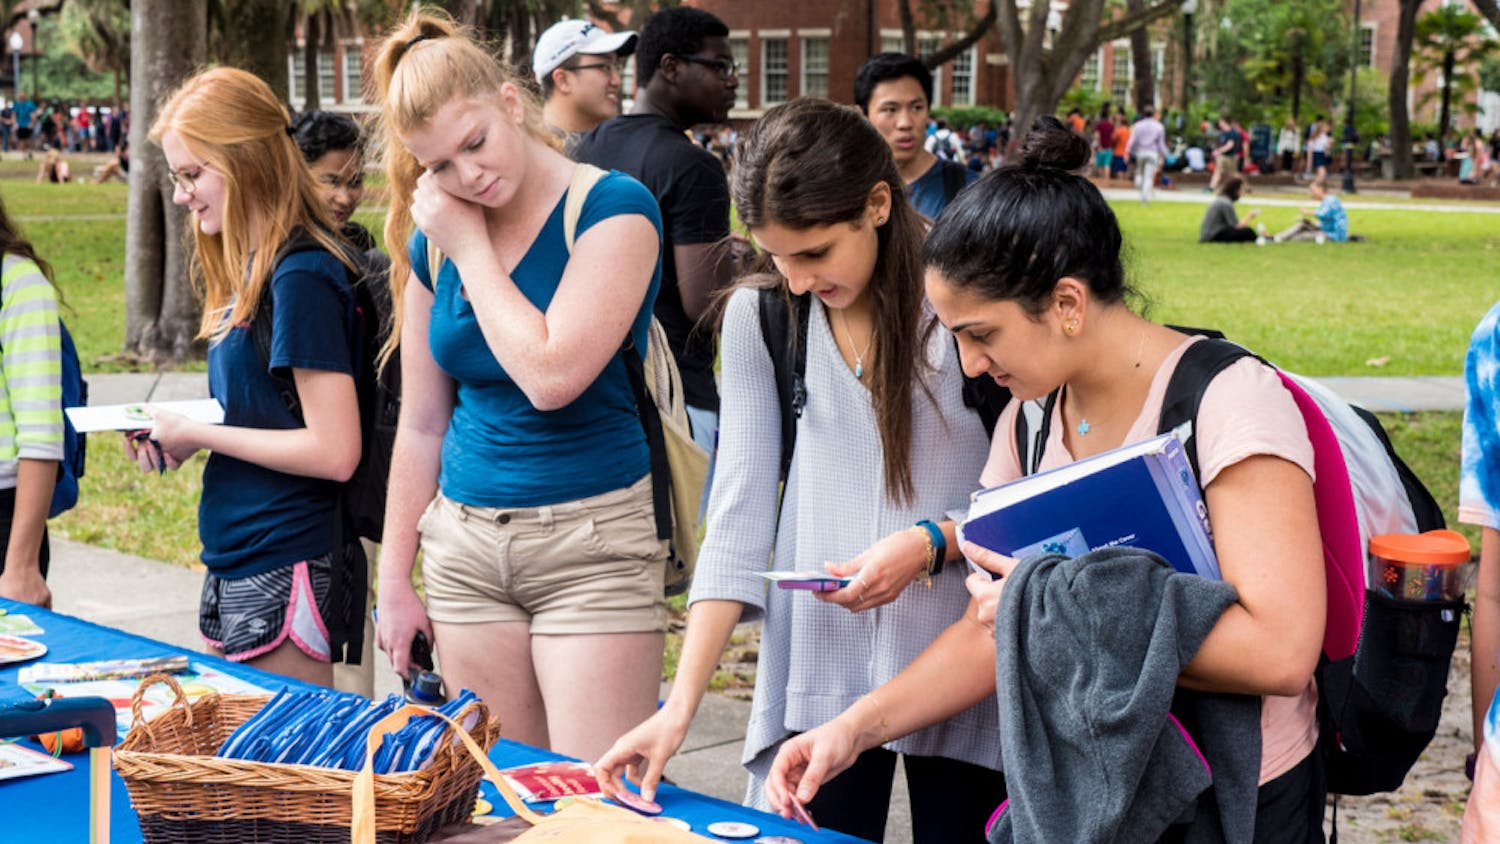 UF health education senior Tala Rizkallah, 21, and UF communication sciences and disorders senior Michelle Saade, 21, check out health-oriented pins at the GatorWell table at the Freshman 15 Wellness Fair on the Plaza of the Americas on Wednesday afternoon.